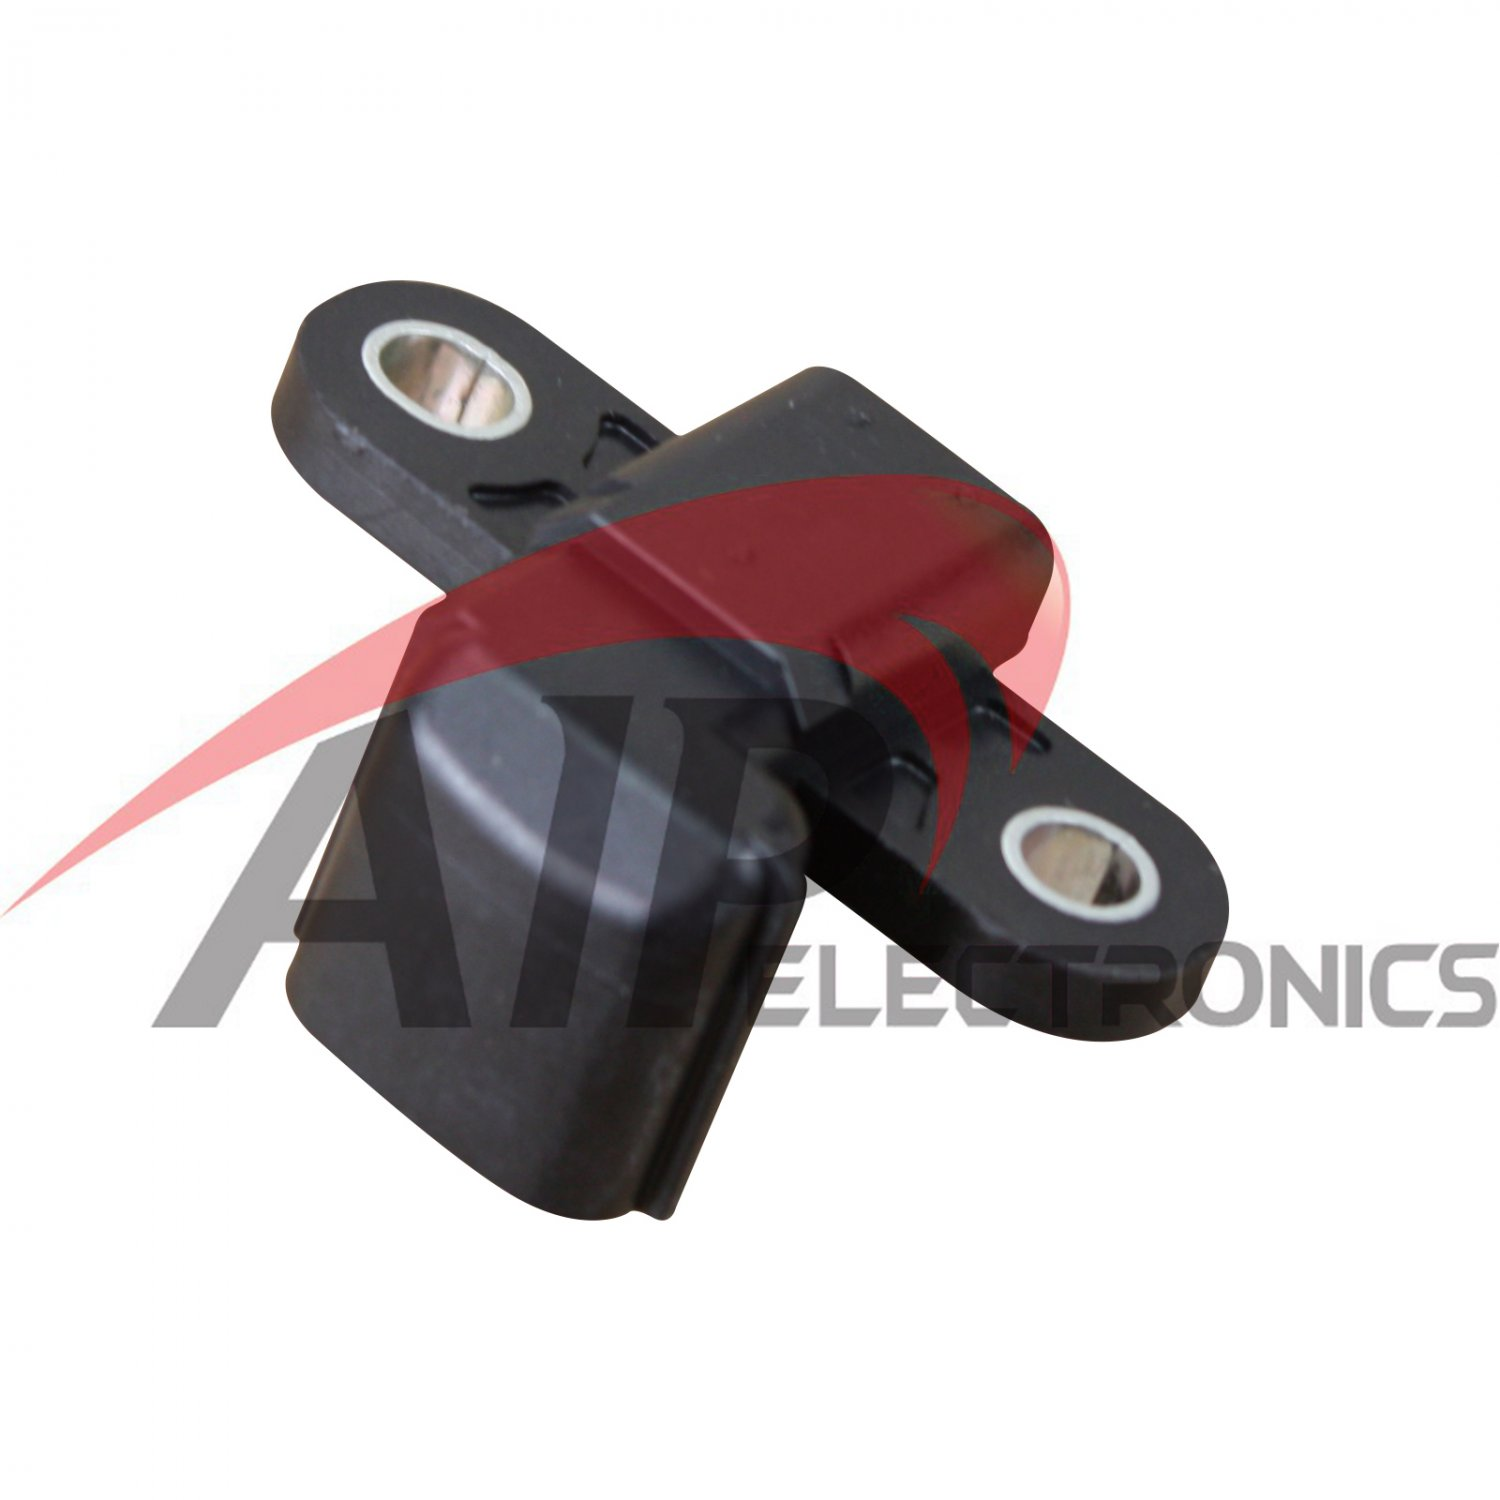 Brand New OEM Original Crankshaft Position Sensor CKP CRK for 2004-2012 MITSUBISHI 2.4L CRK199-OE